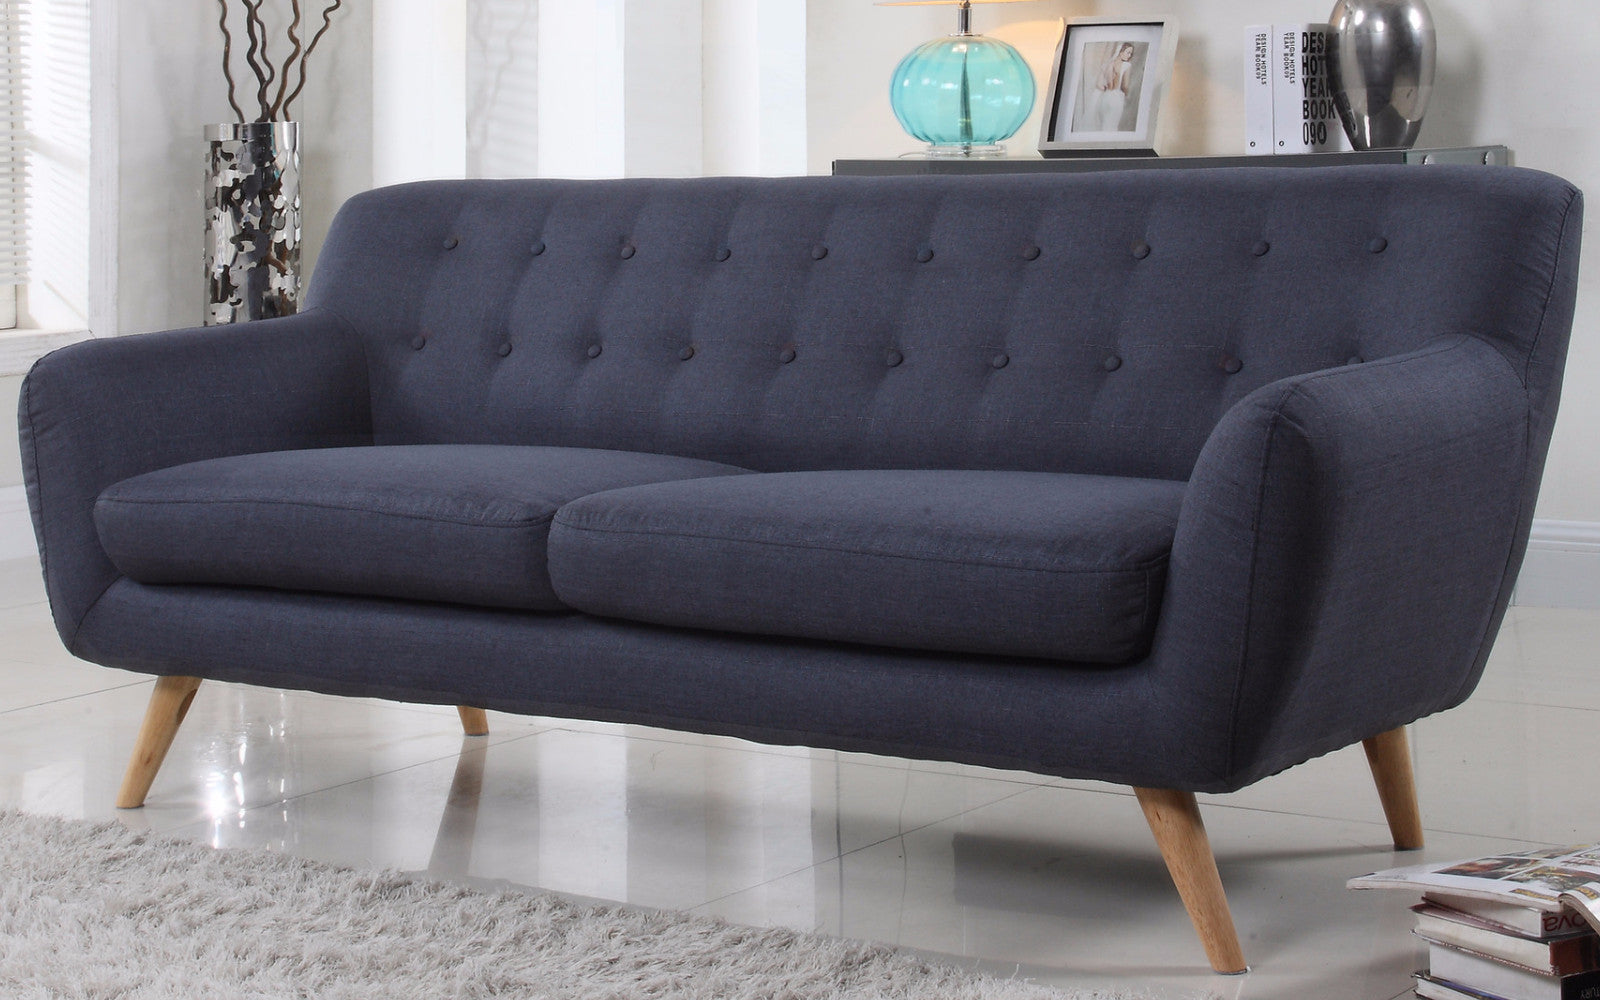 Image Result For Sofamania Couch